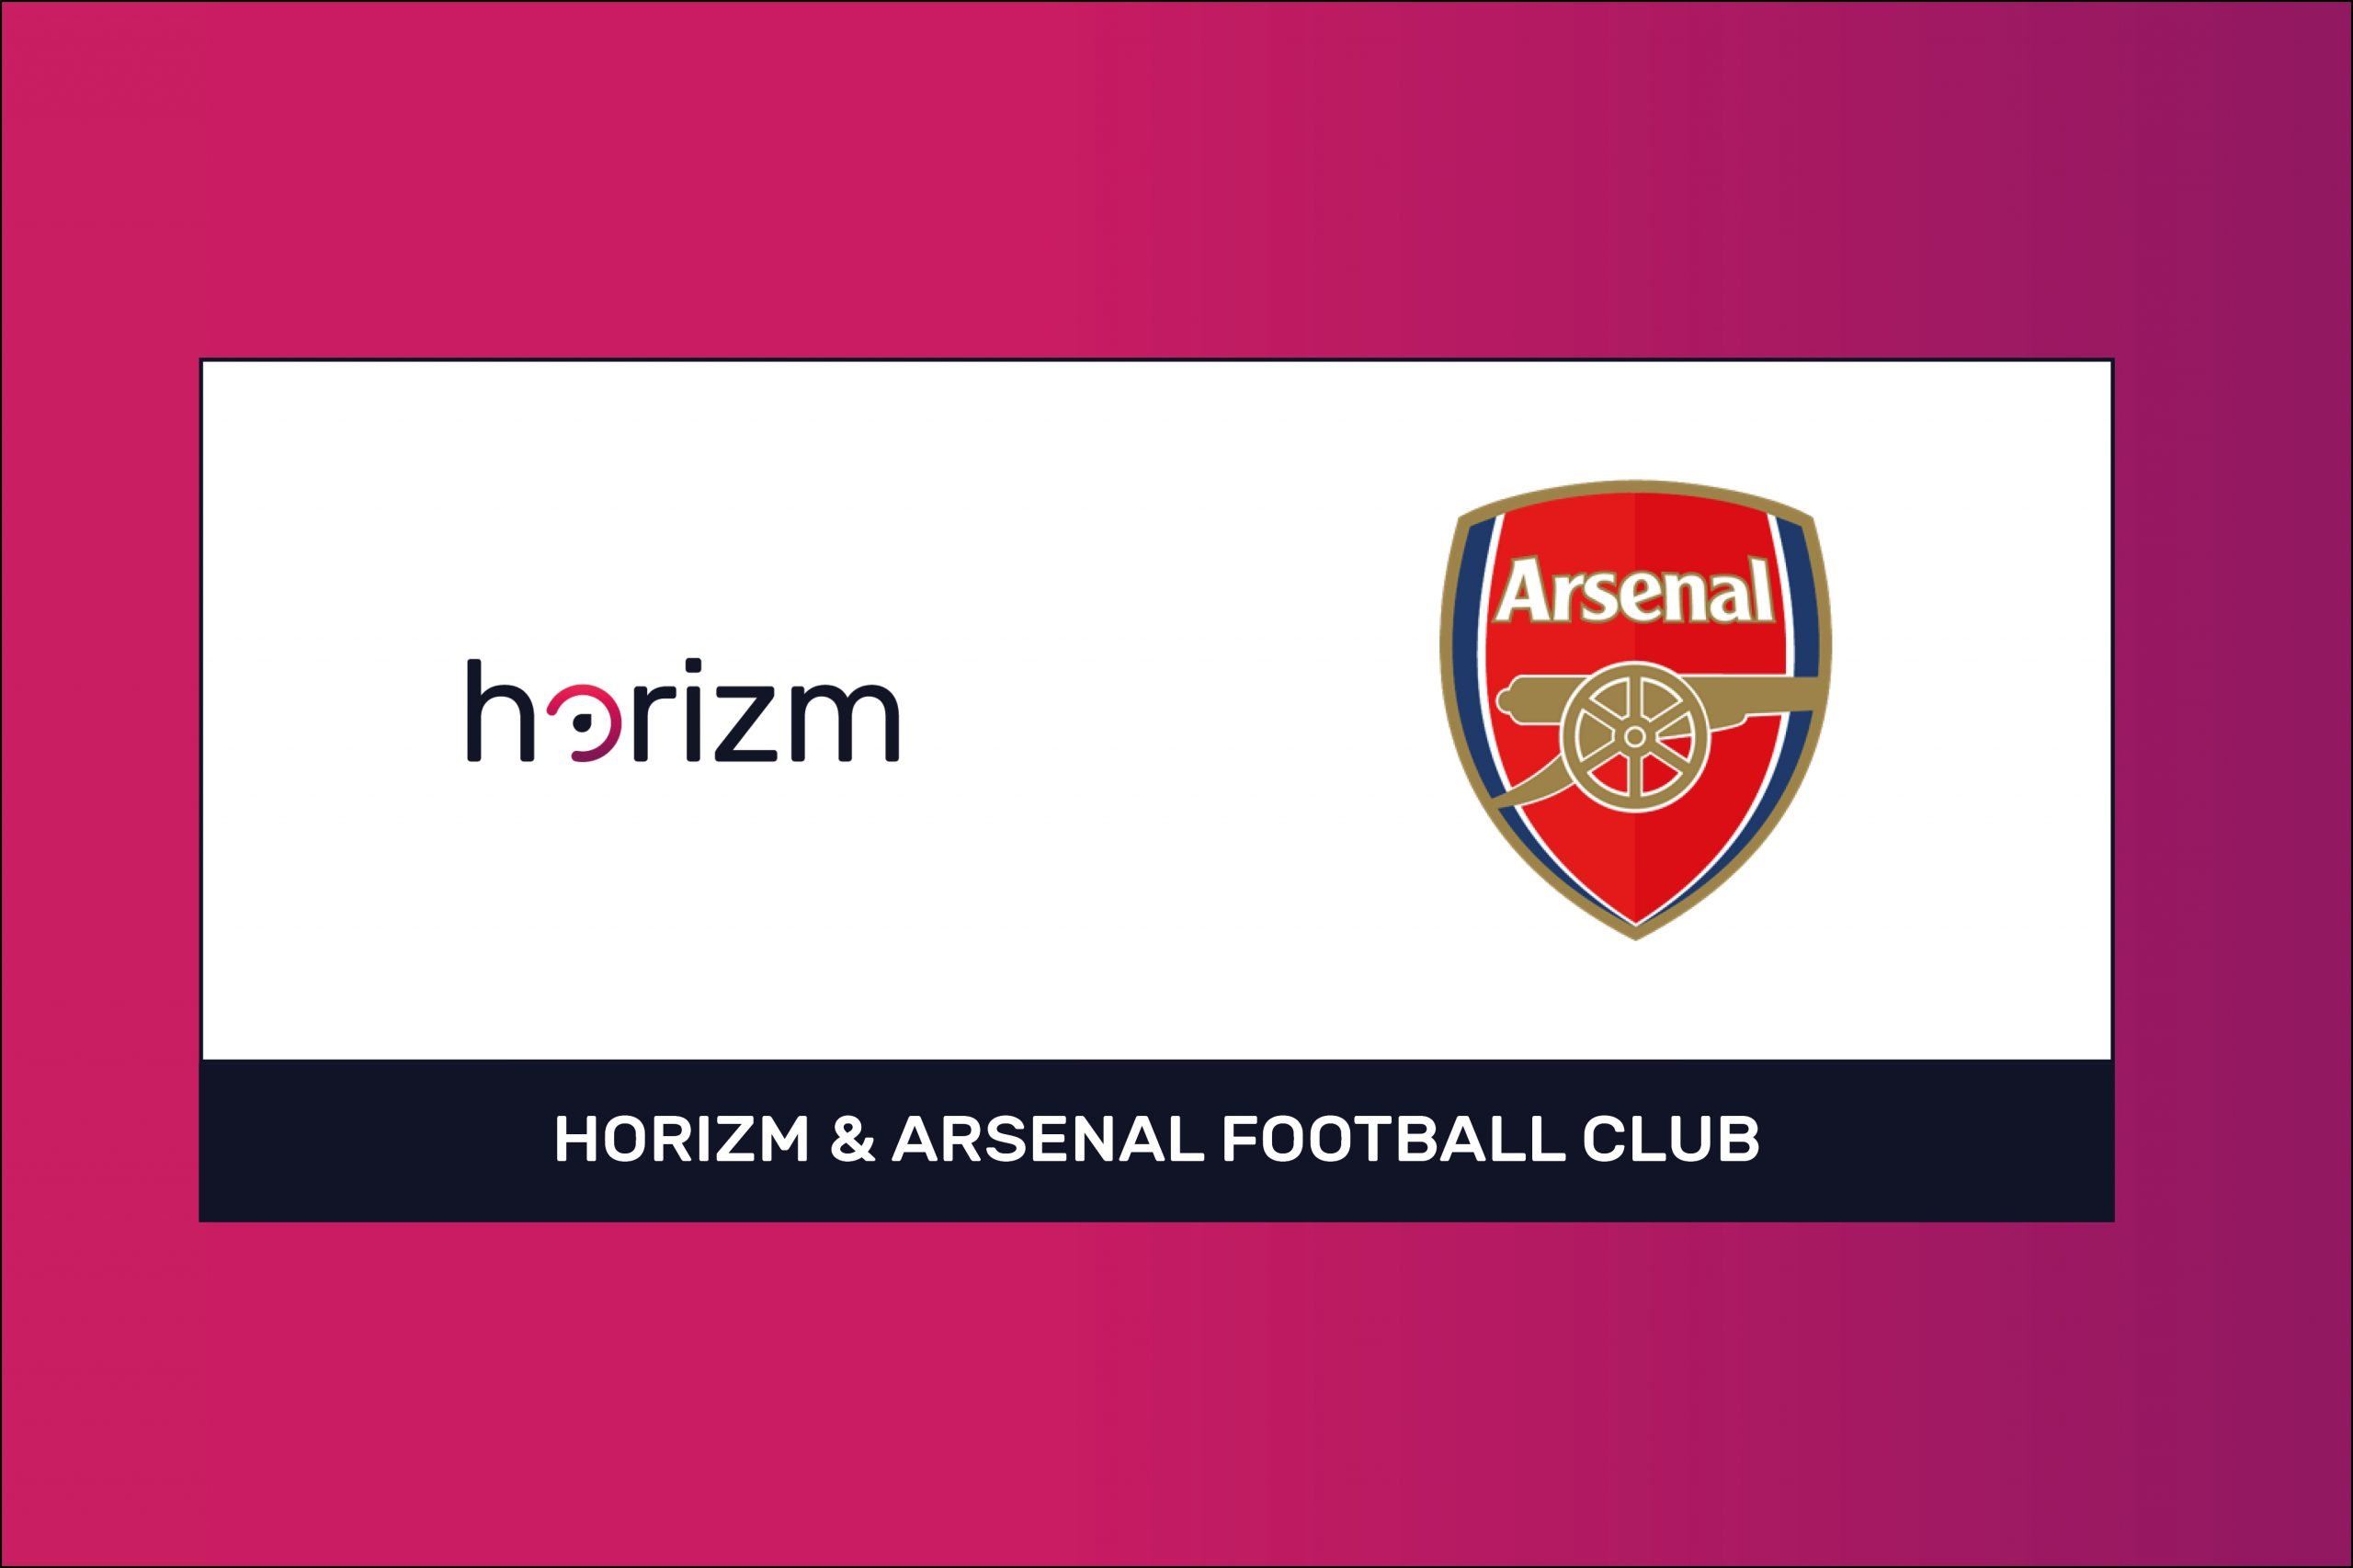 Arsenal score digital boost with Horizm